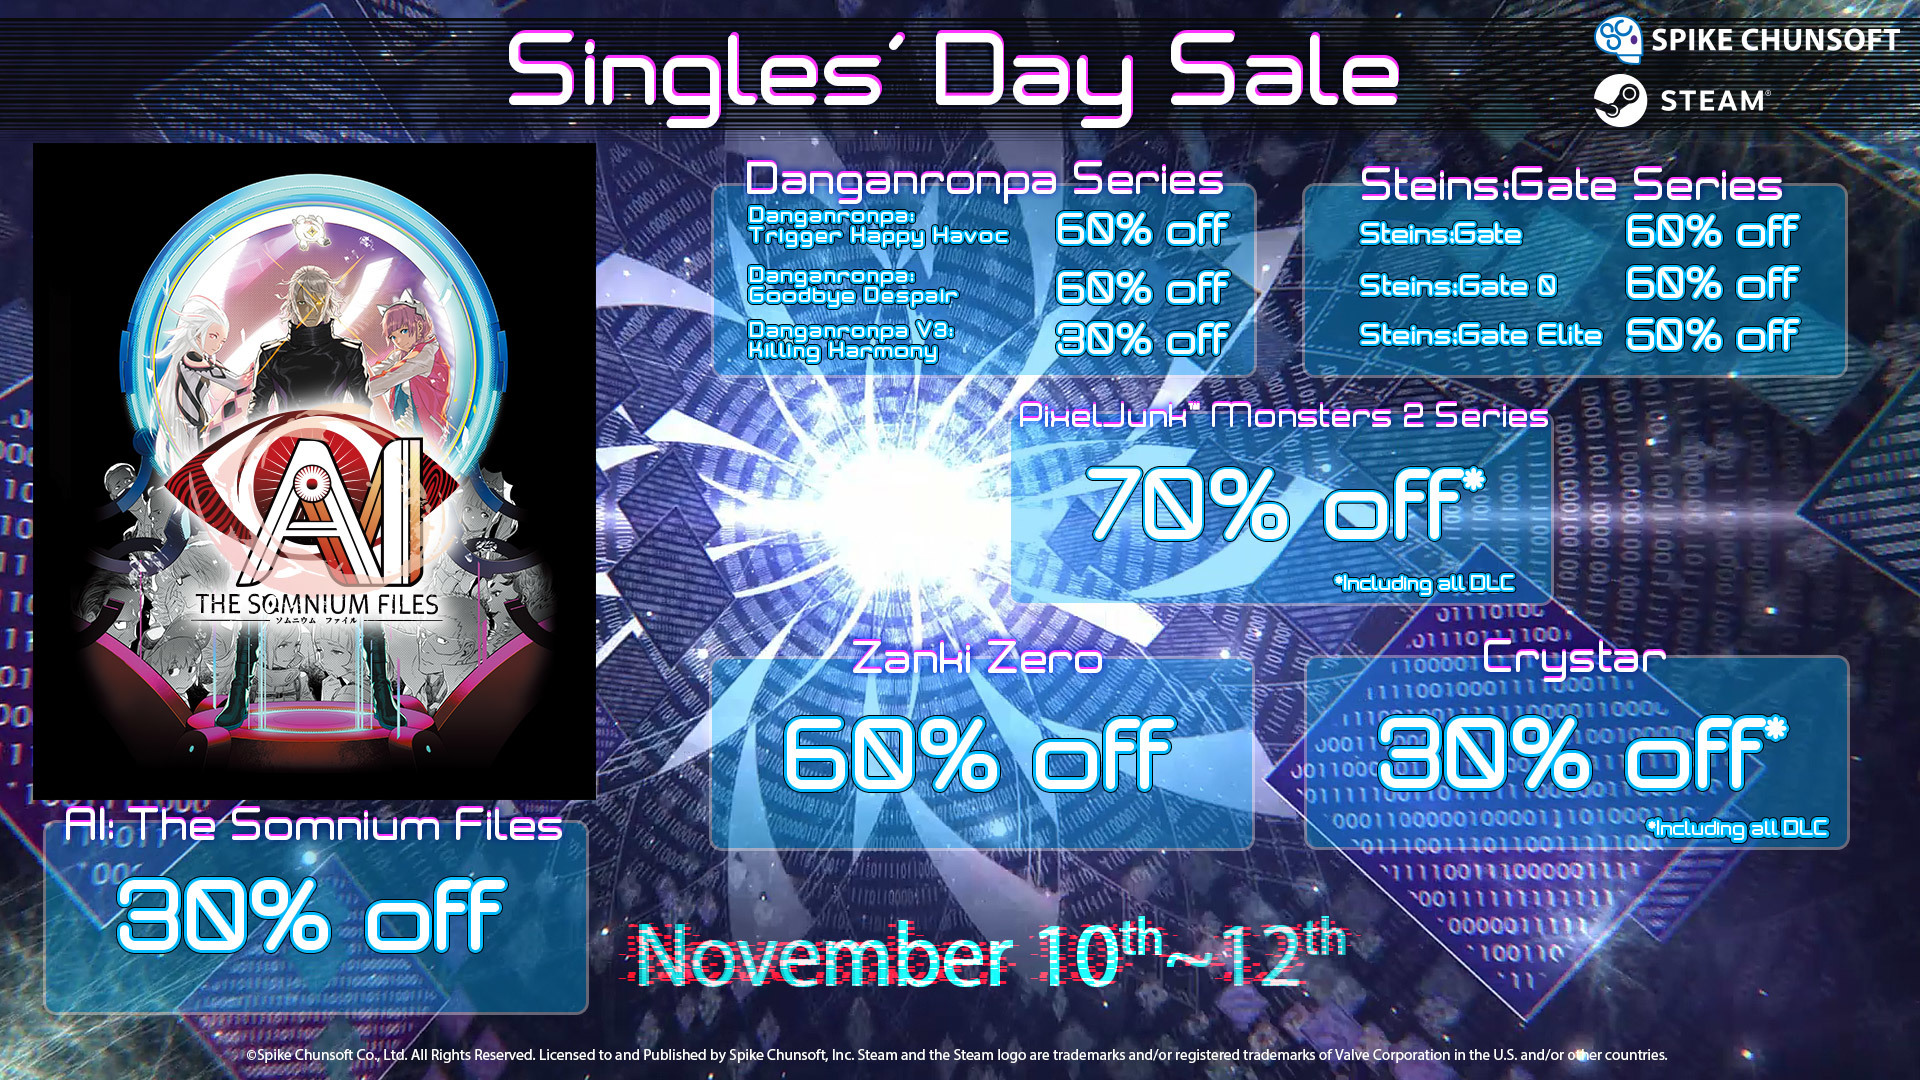 Singles' Day 2019 Sale!